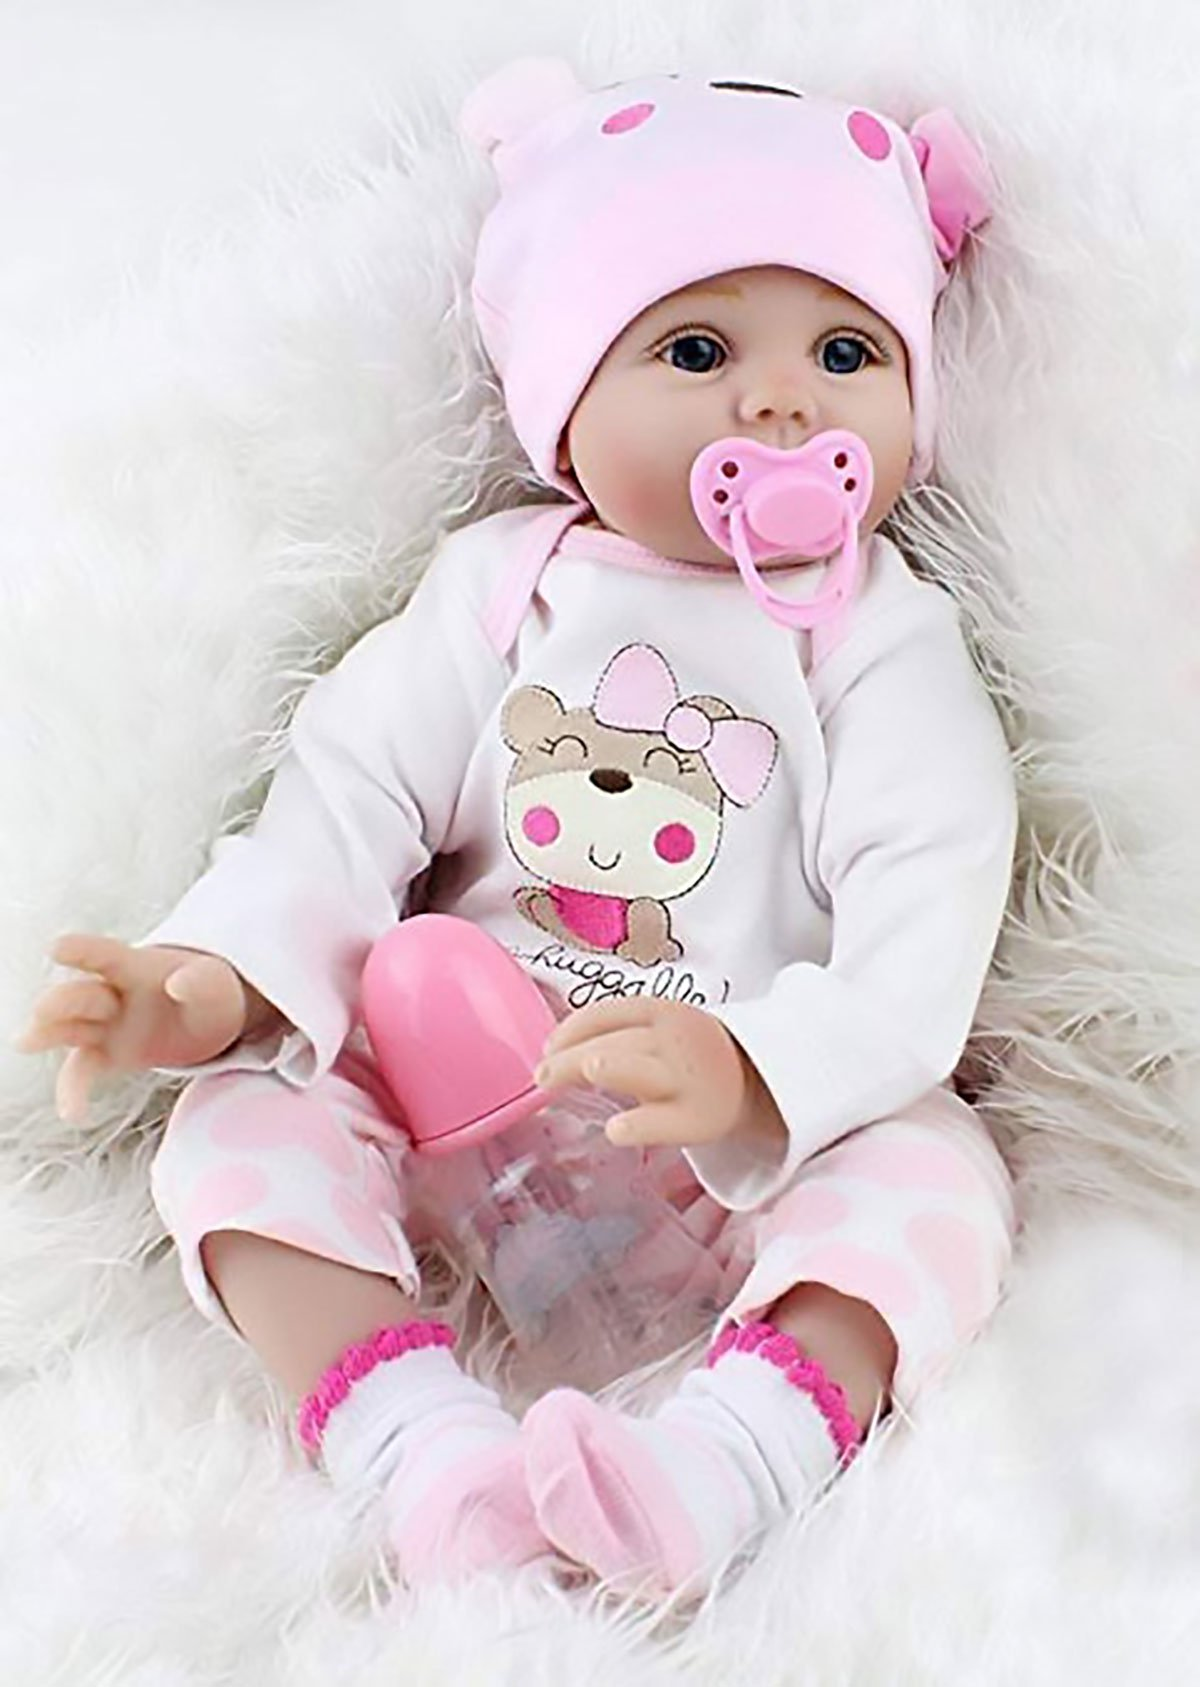 How To Care For A Reborn Doll